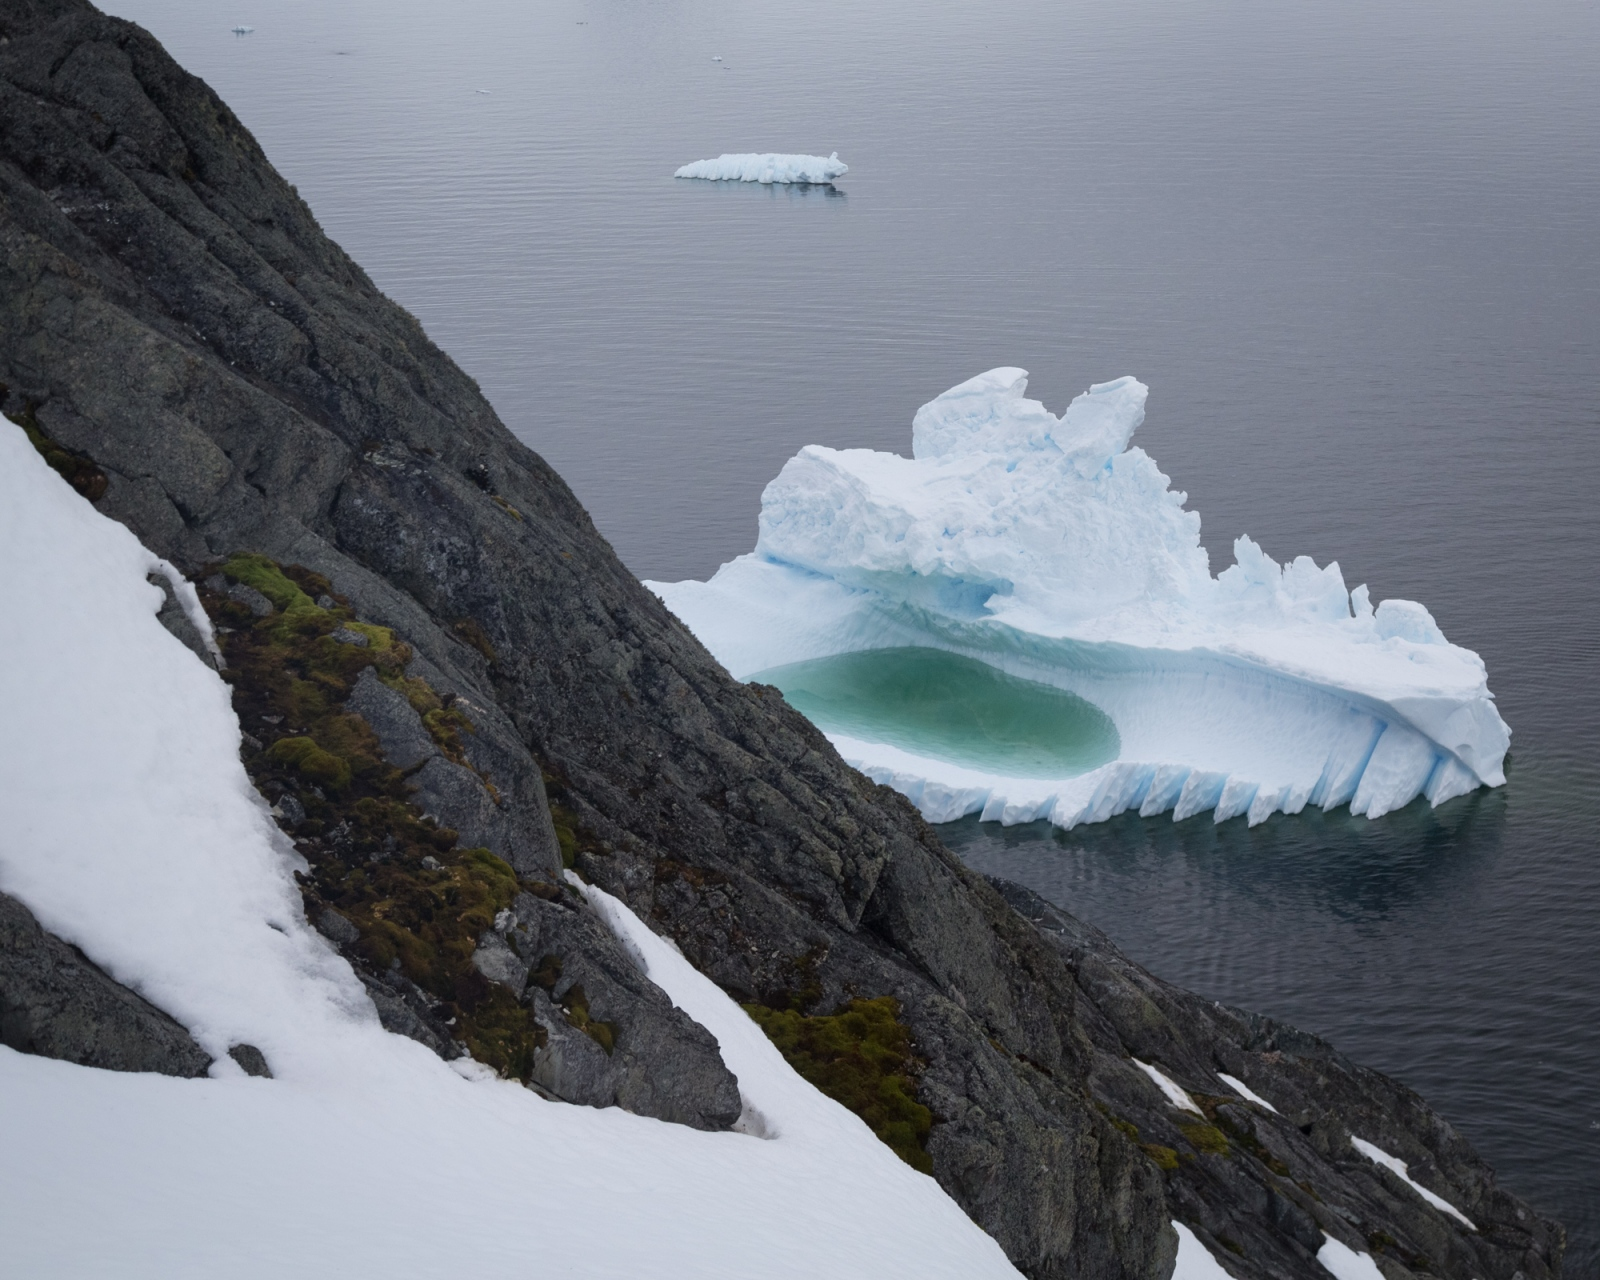 A melt pool forms in an iceberg in Paradise Harbour, Antarctica.